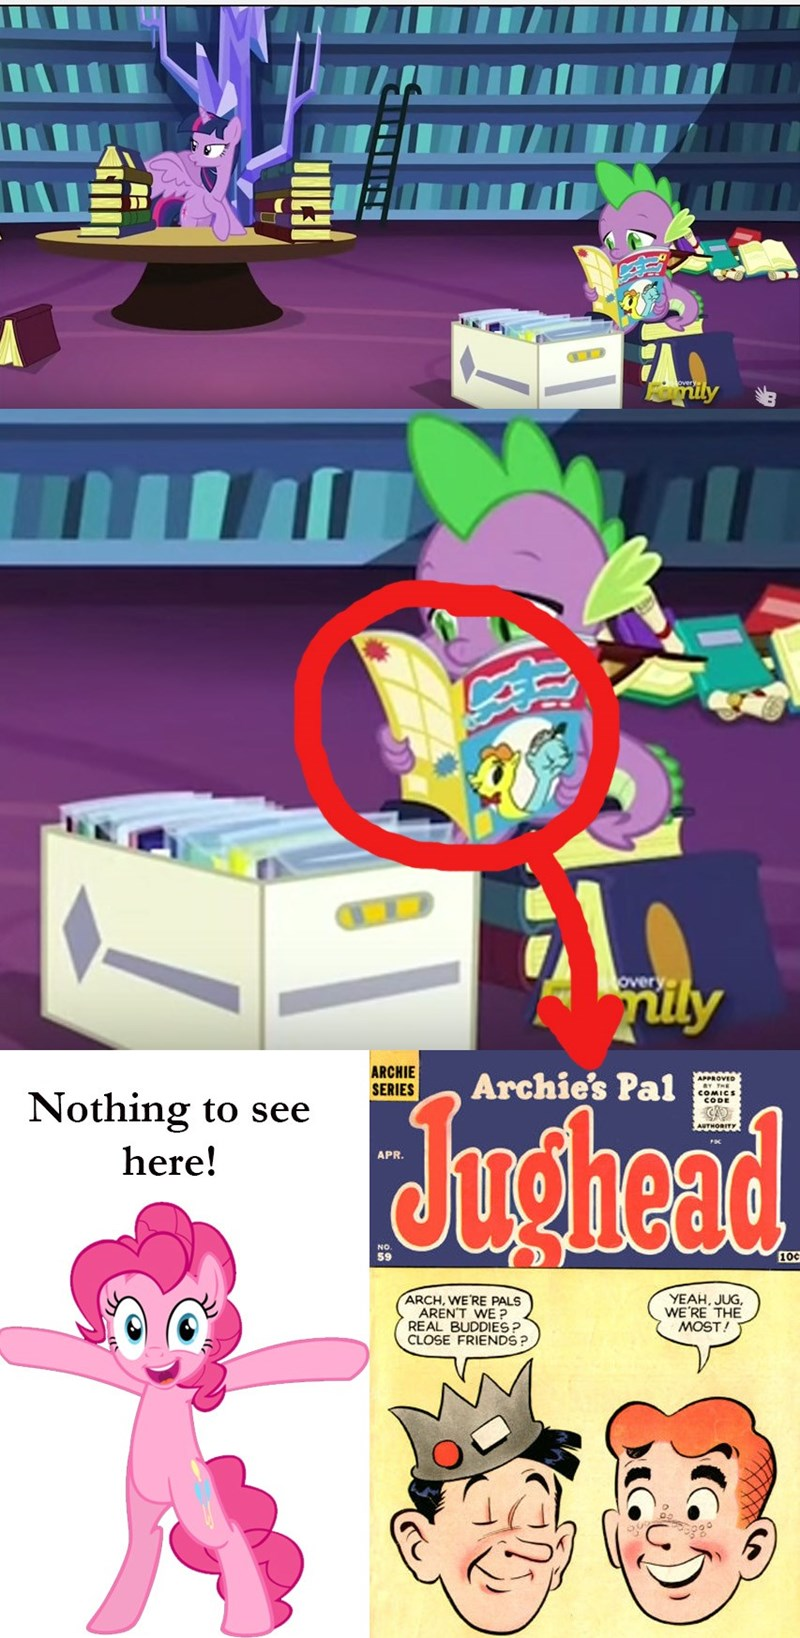 spike,Archie Comics,made in manehattan